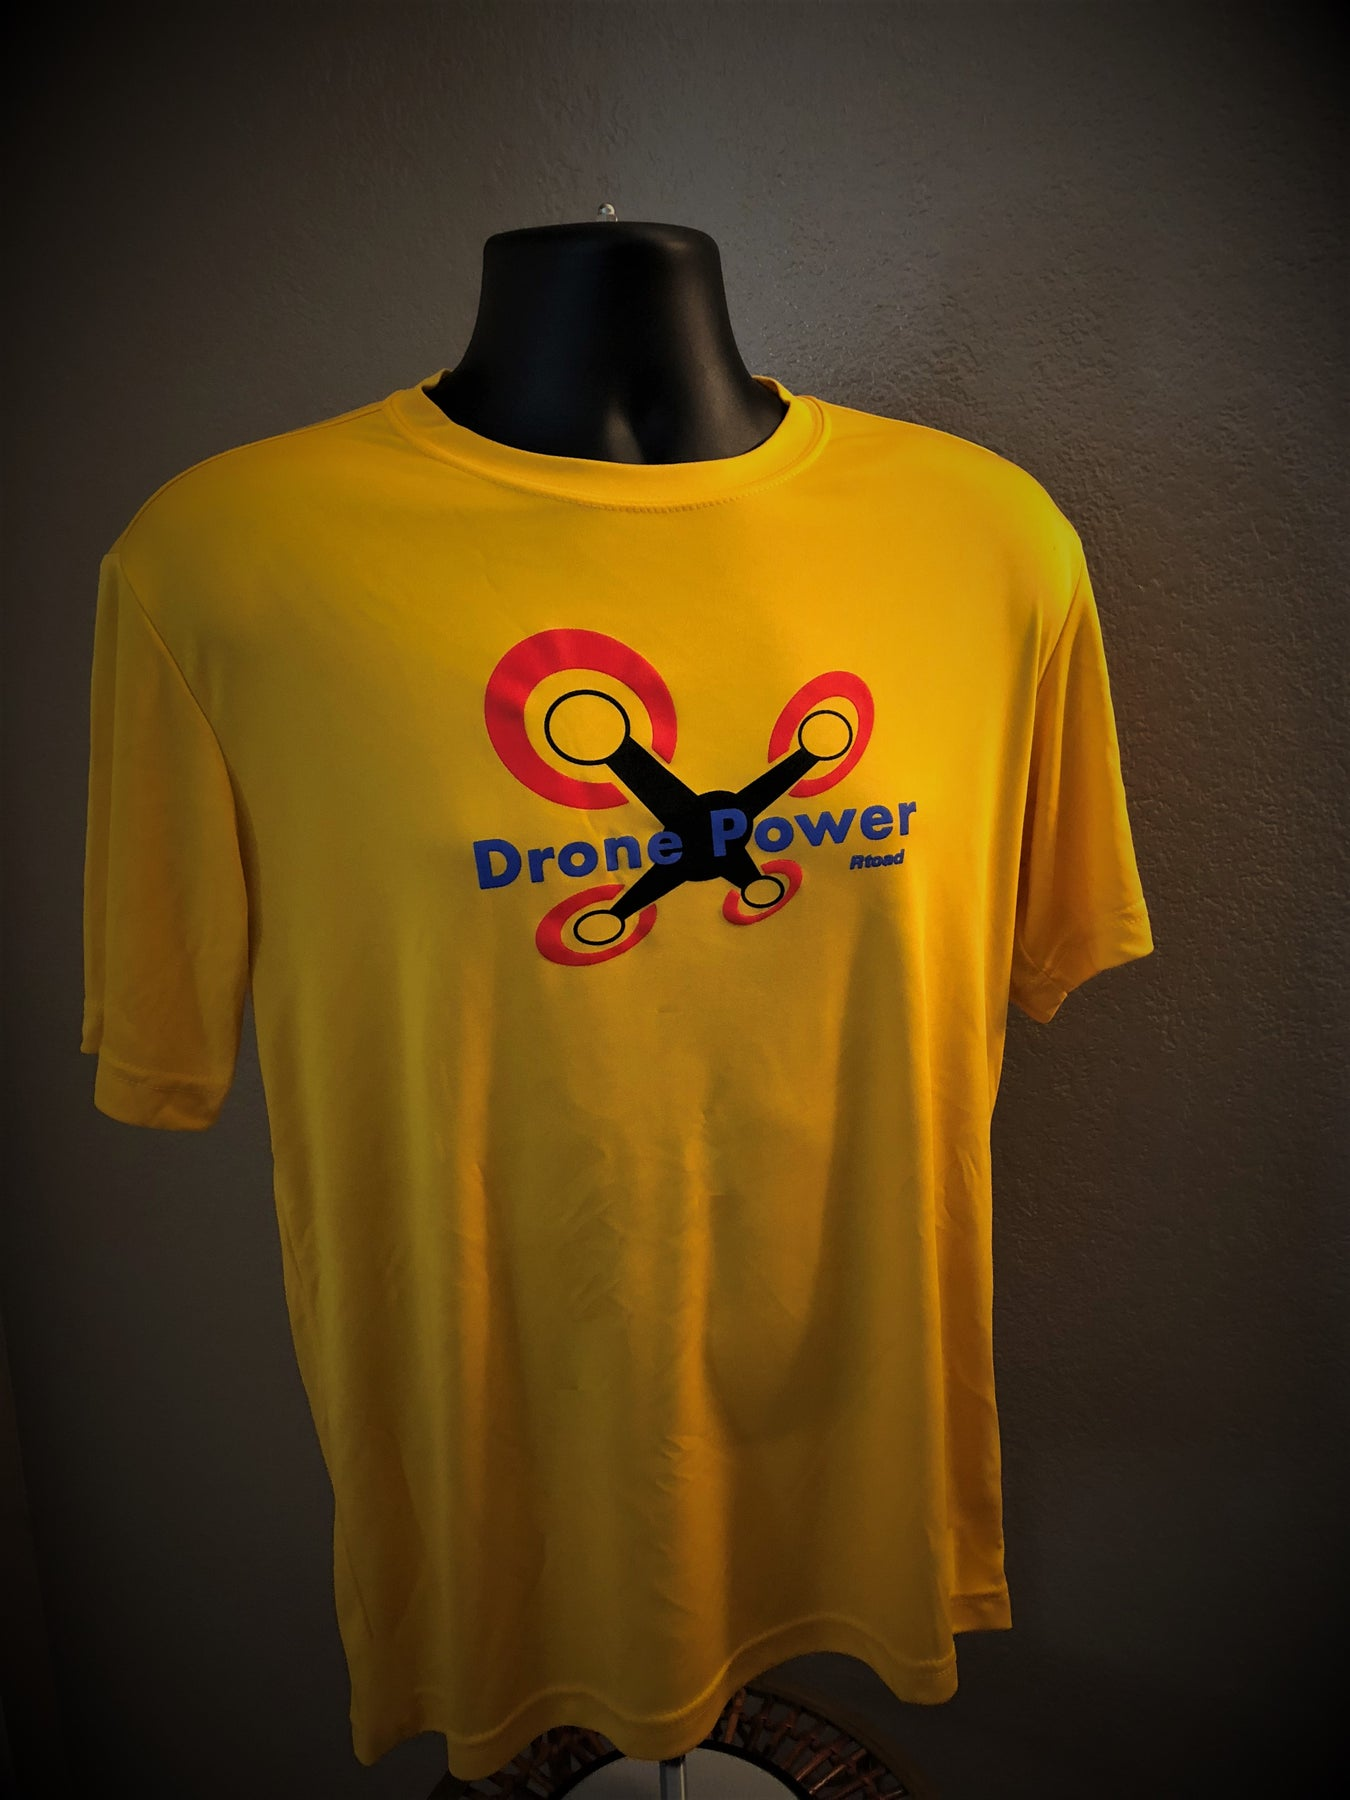 drone power logo t shirts rent to own a drone llc drone power logo t shirts rent to